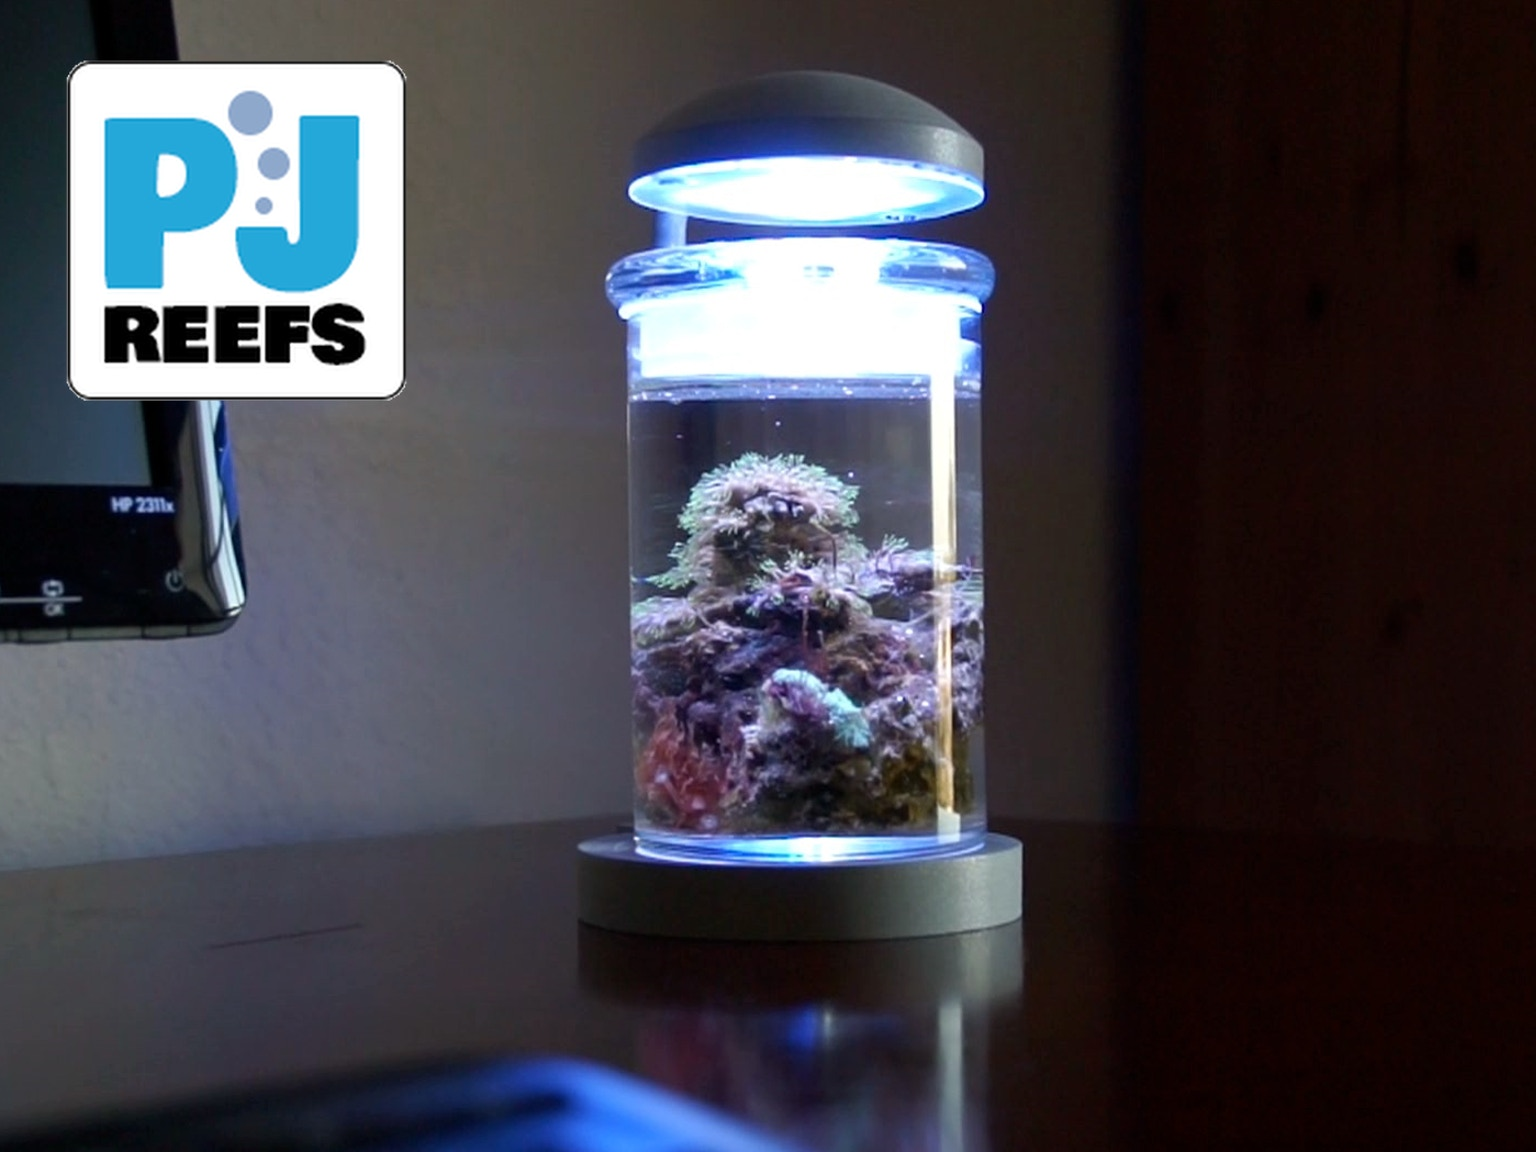 Pj reefs miniature saltwater aquarium by pj reefs for Low maintenance fish tank